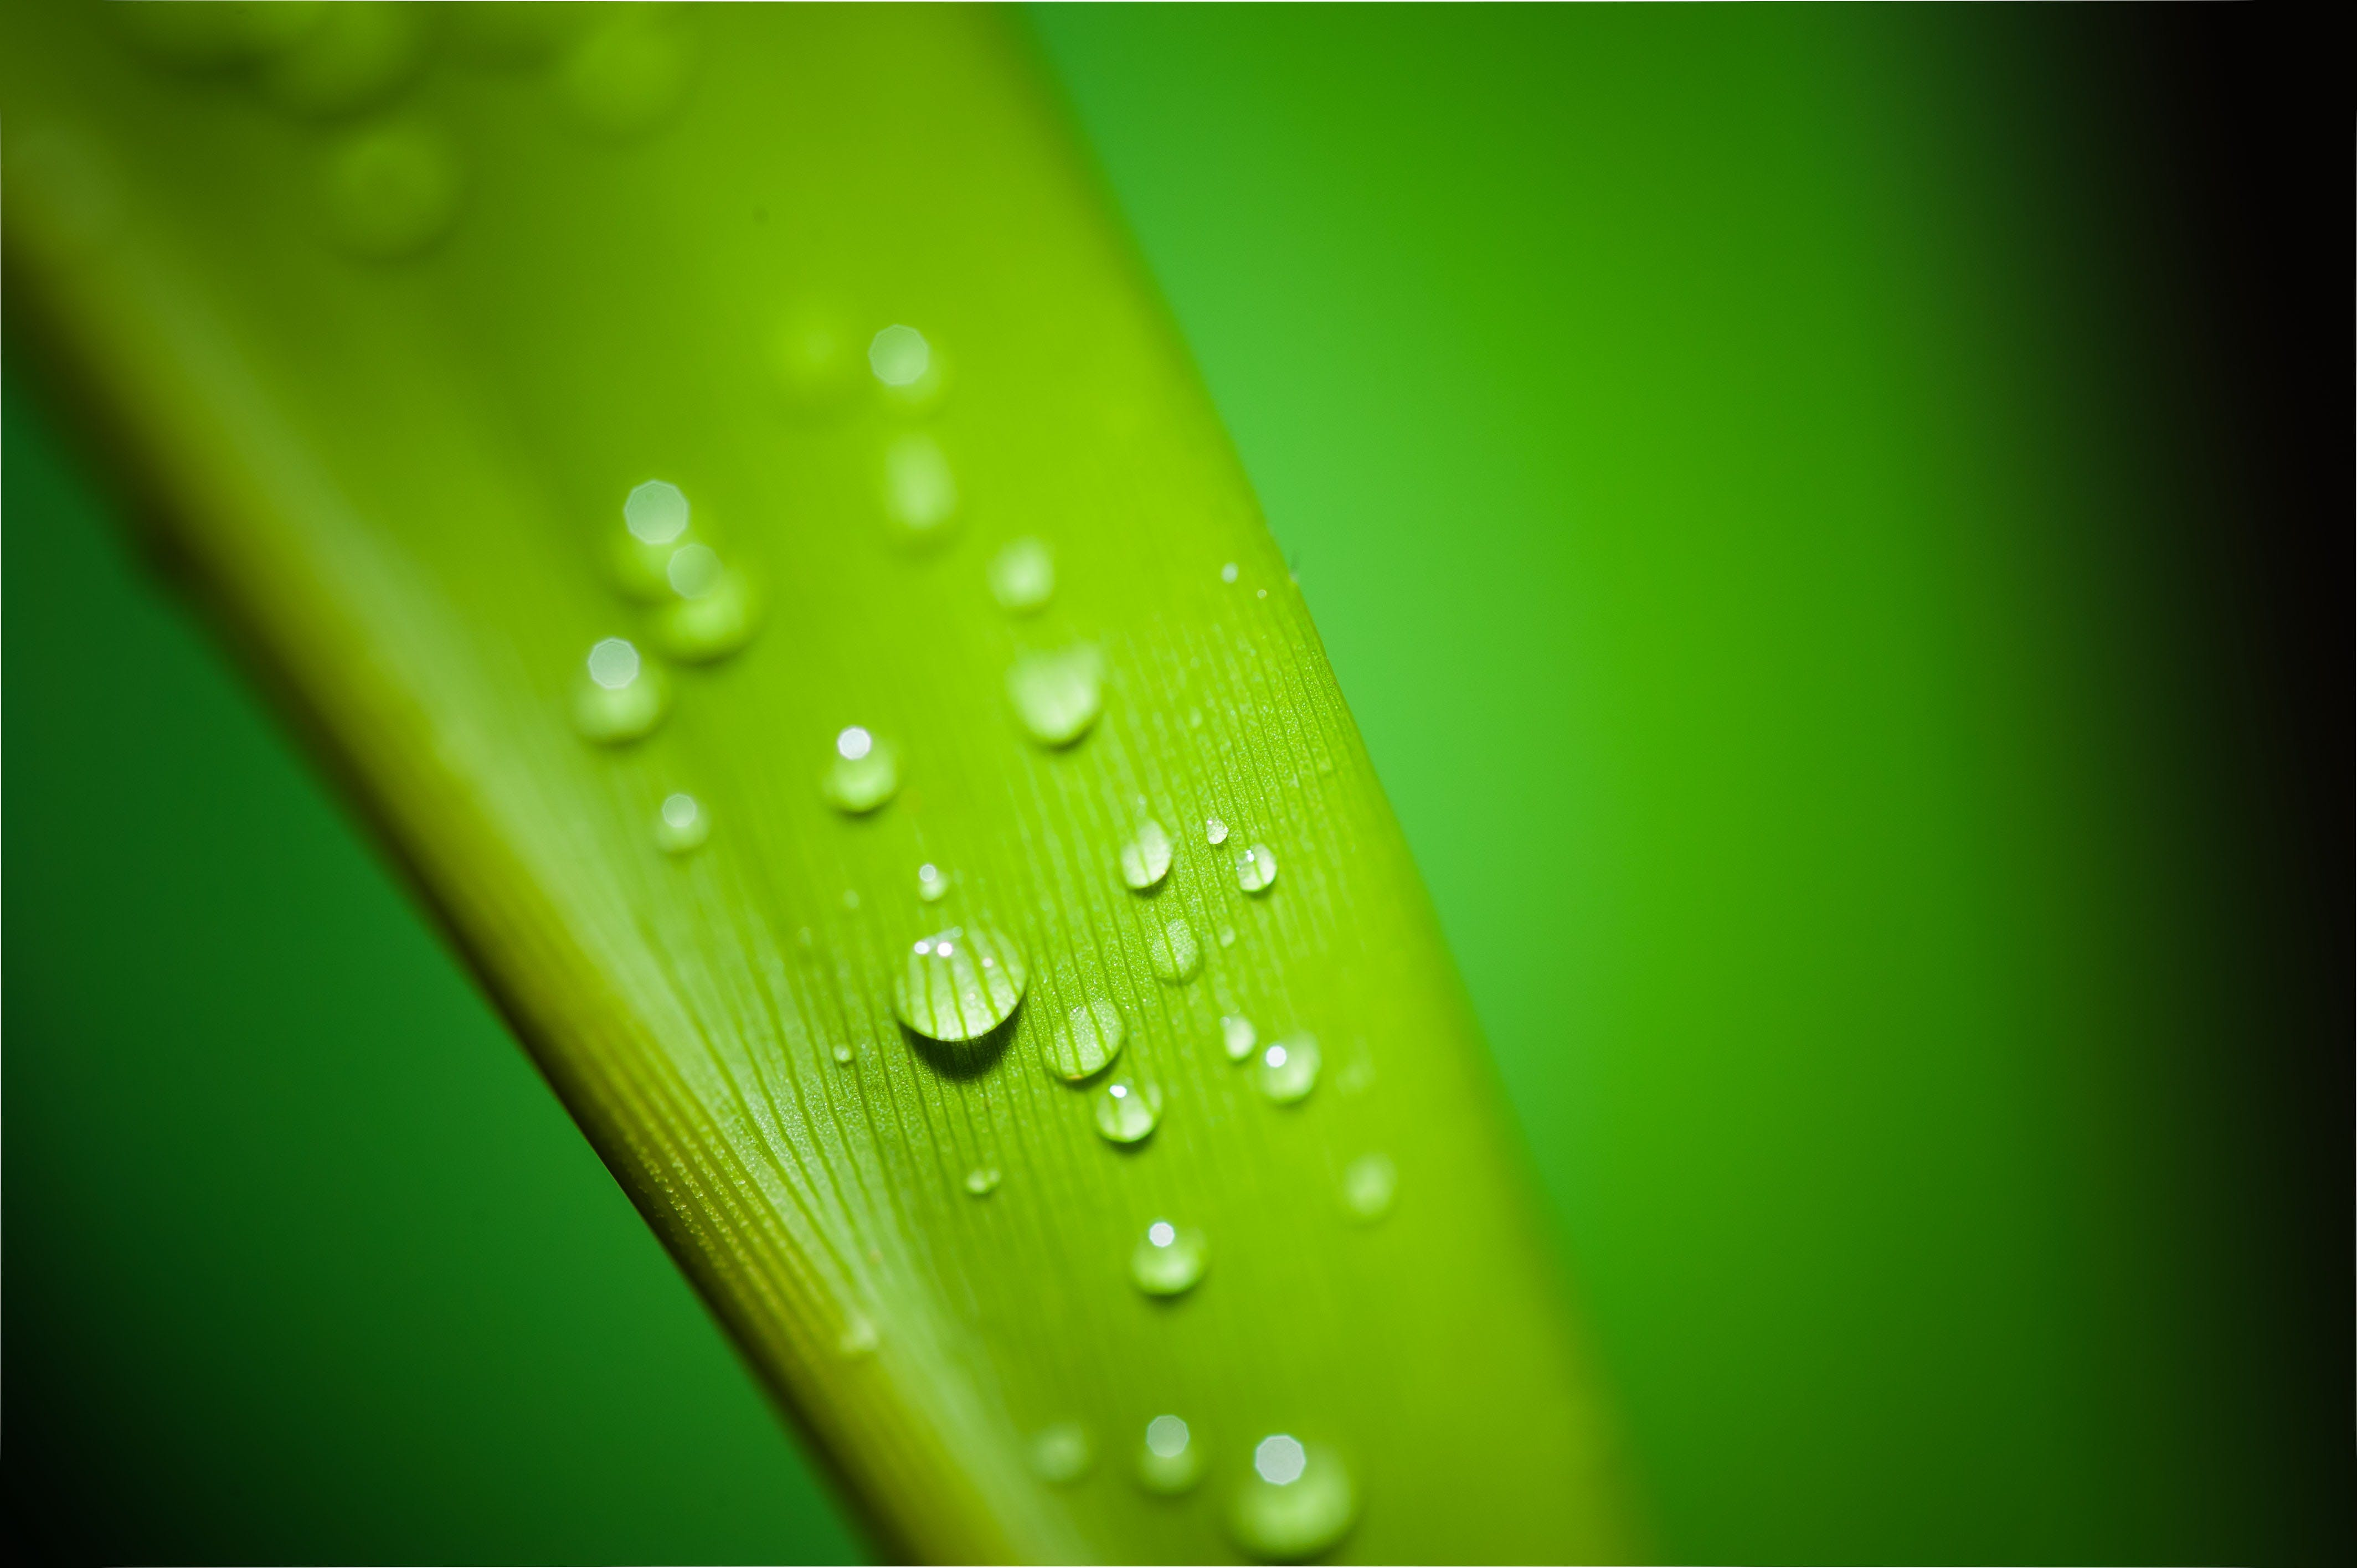 Green Leaf With Water Droplets